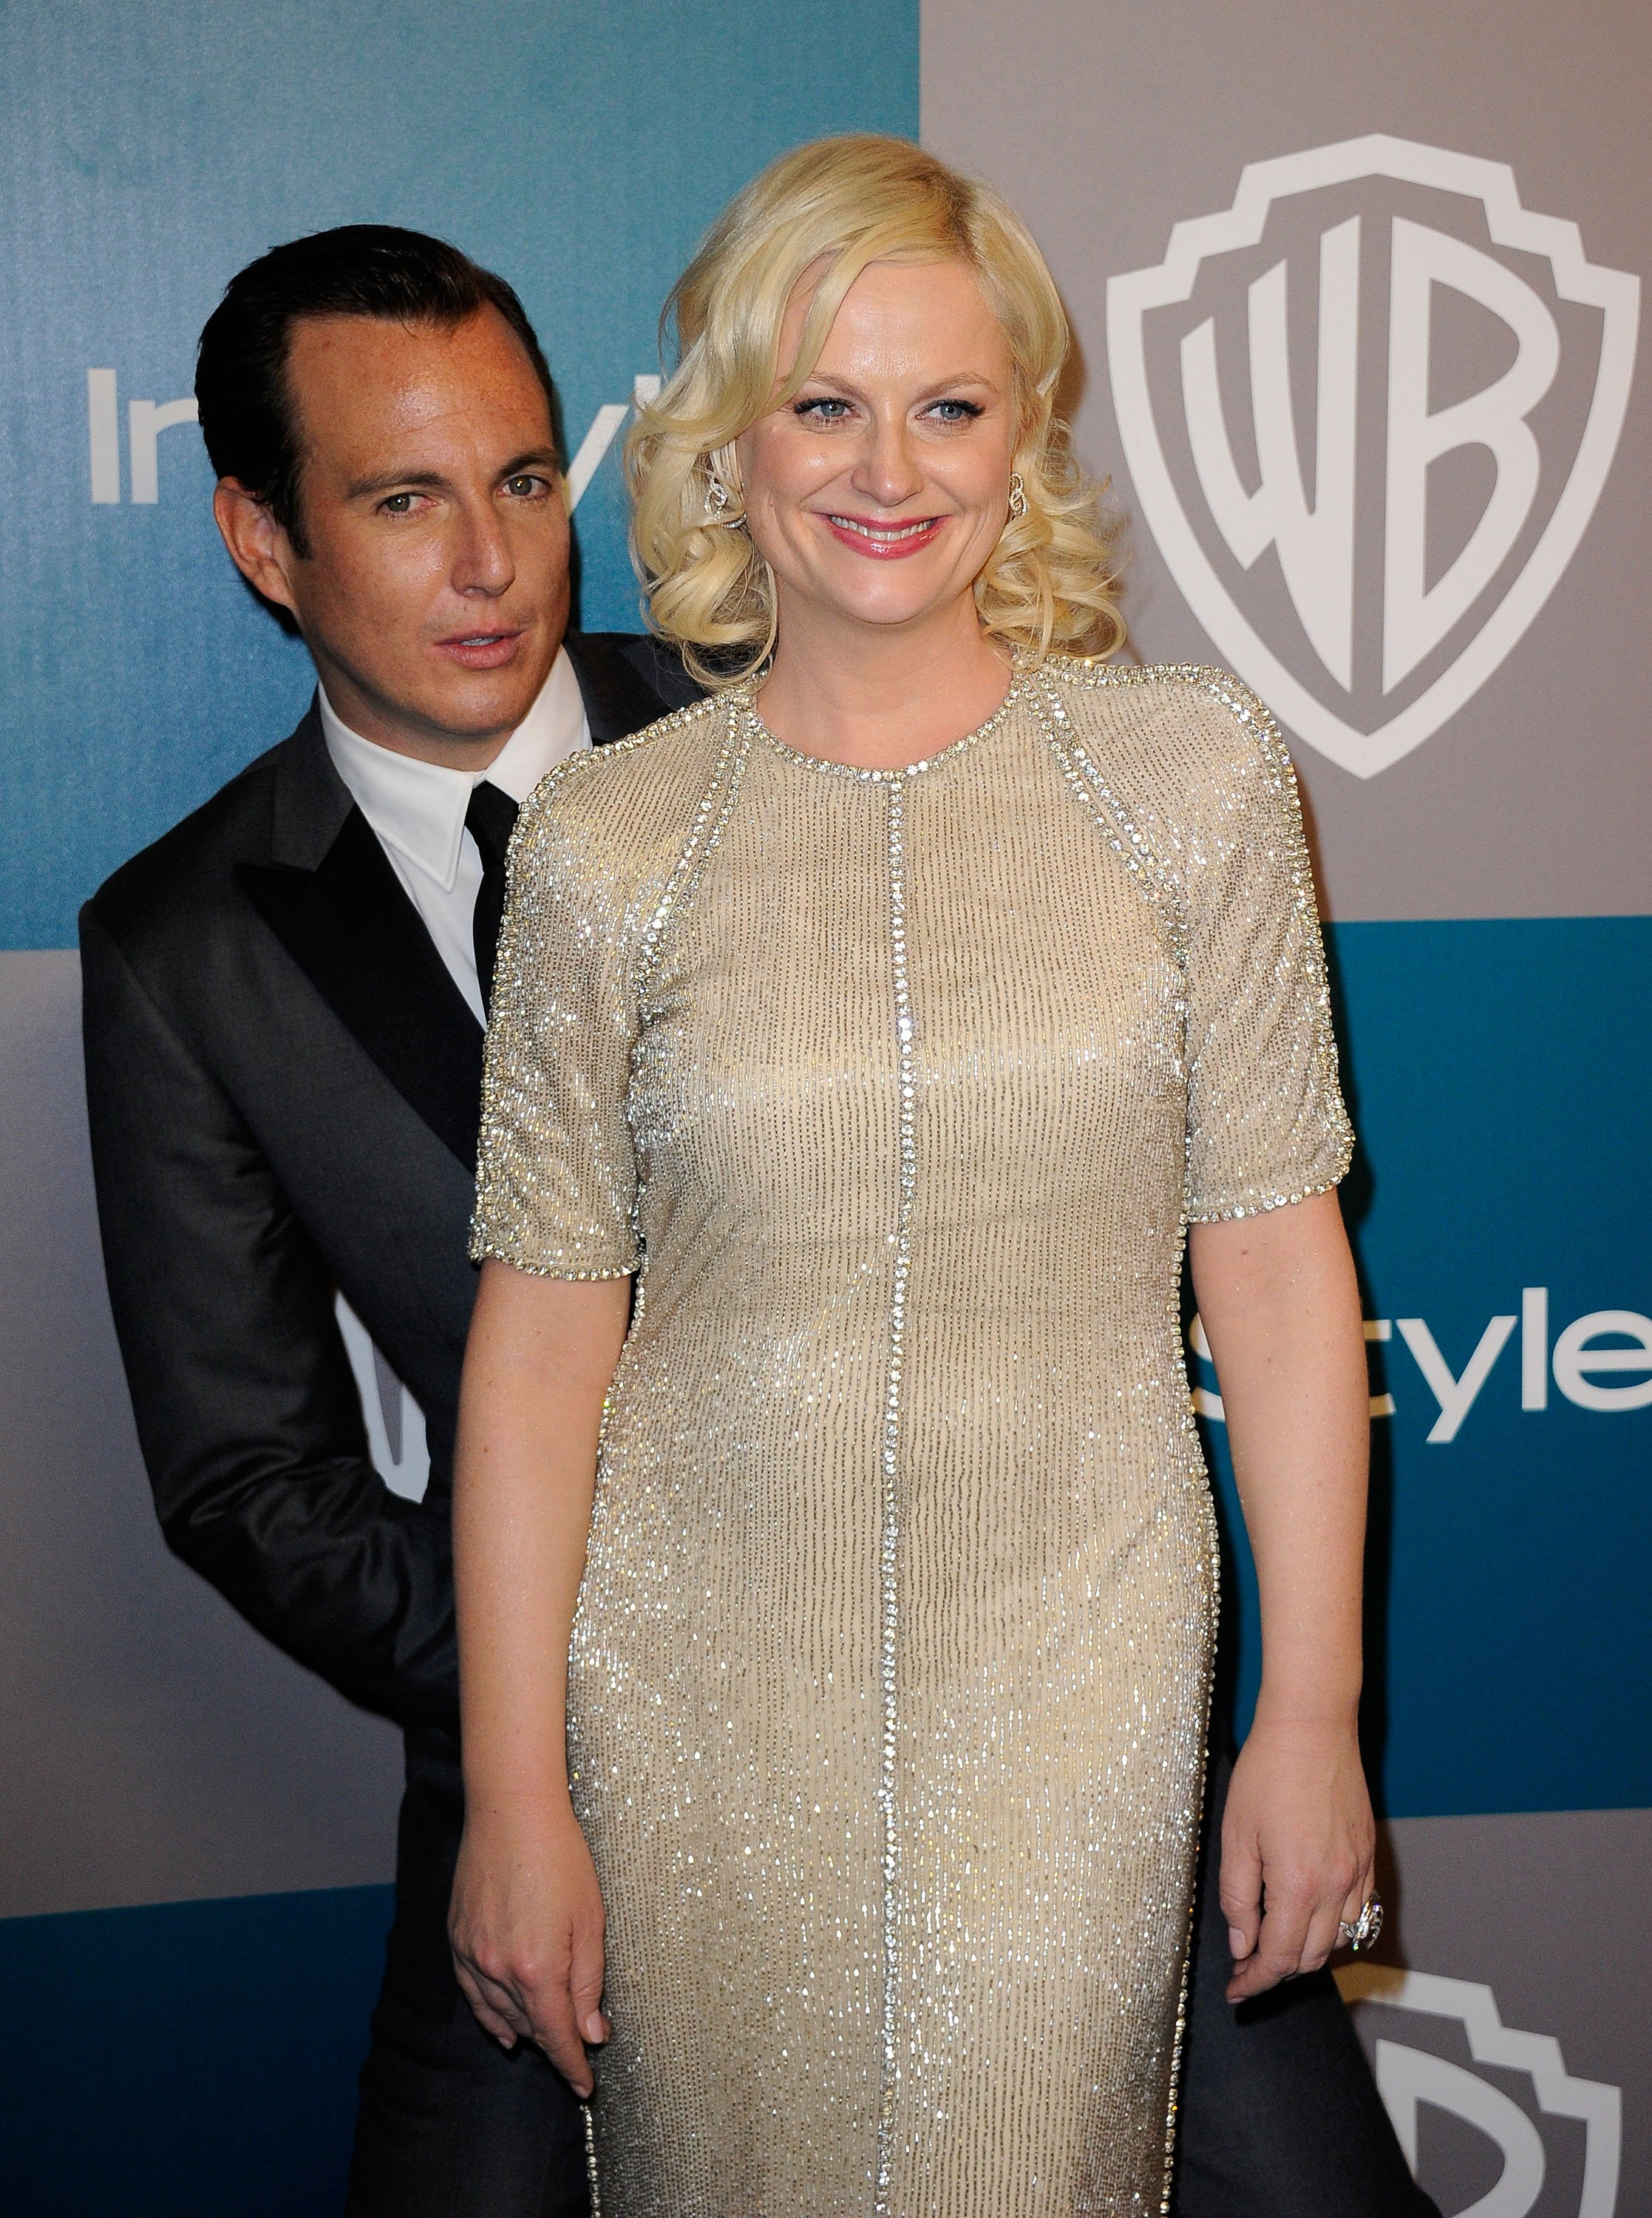 Amy Poehler and Will Arnett arrive at 13th Annual Warner Bros. And InStyle Golden Globe Awards After Party at The Beverly Hilton hotel on January 15, 2012 | Photo: GettyImages